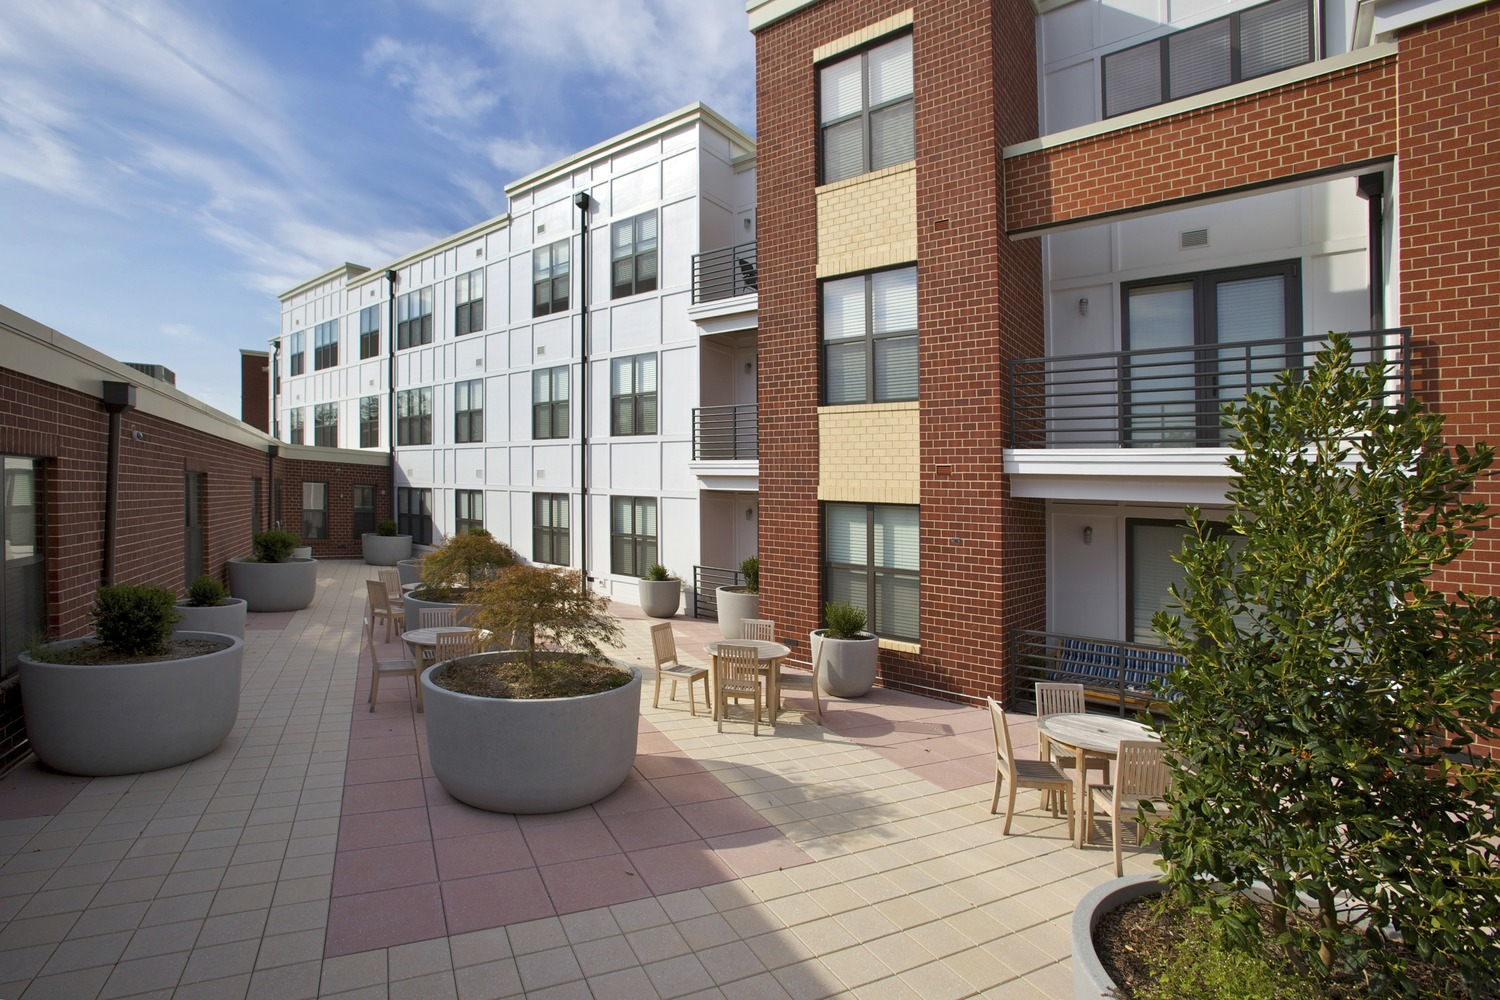 CBG builds Del Ray Central, a 141 Luxury Apartments with Retail Over Two-Level Garage in Alexandria, VA - Image #3